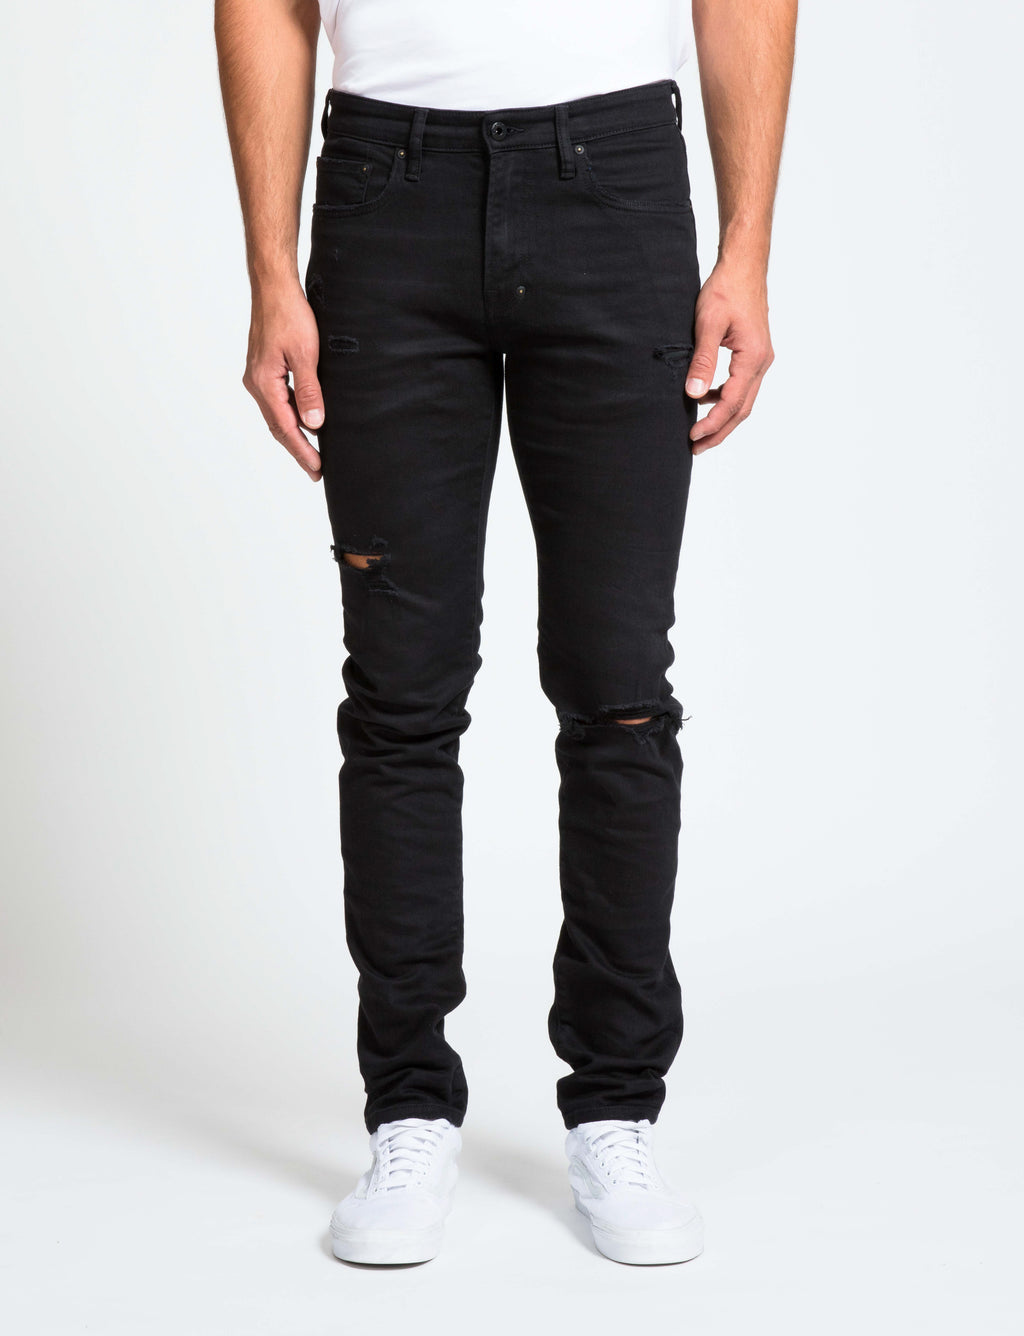 Prps - Windsor - Black 5 Pocket Twill - Pant - Prps